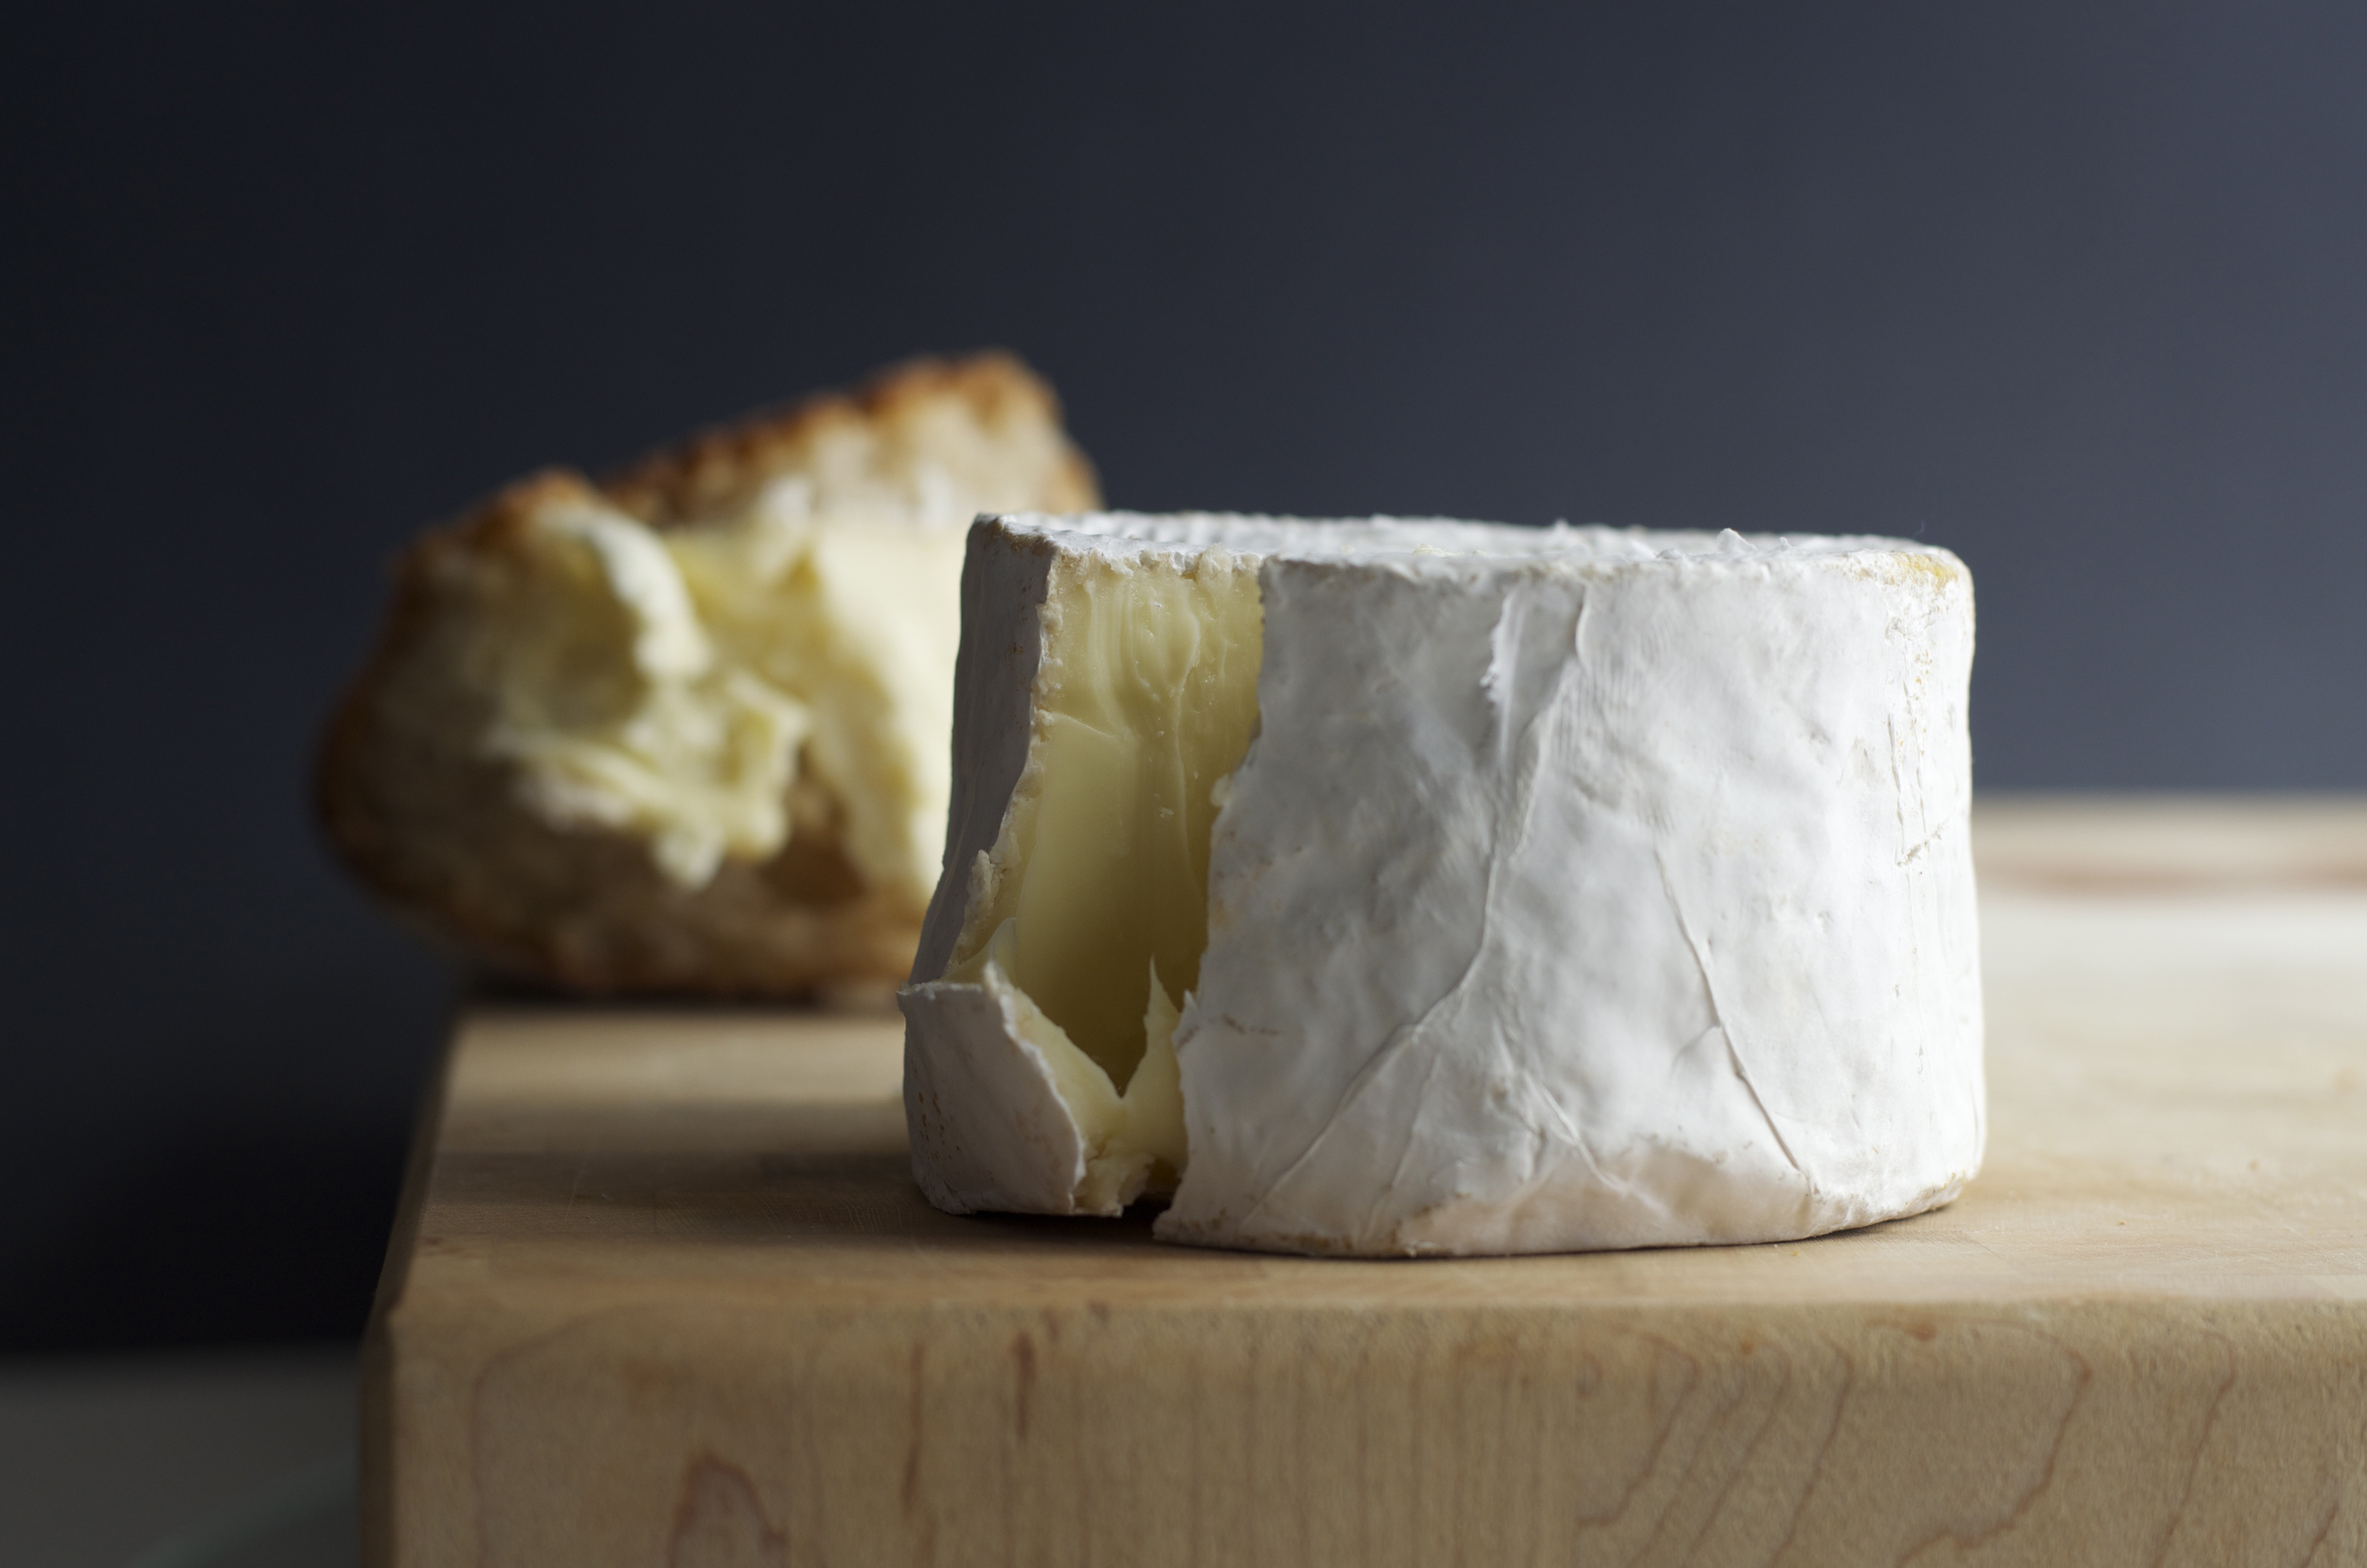 Camembert with bread